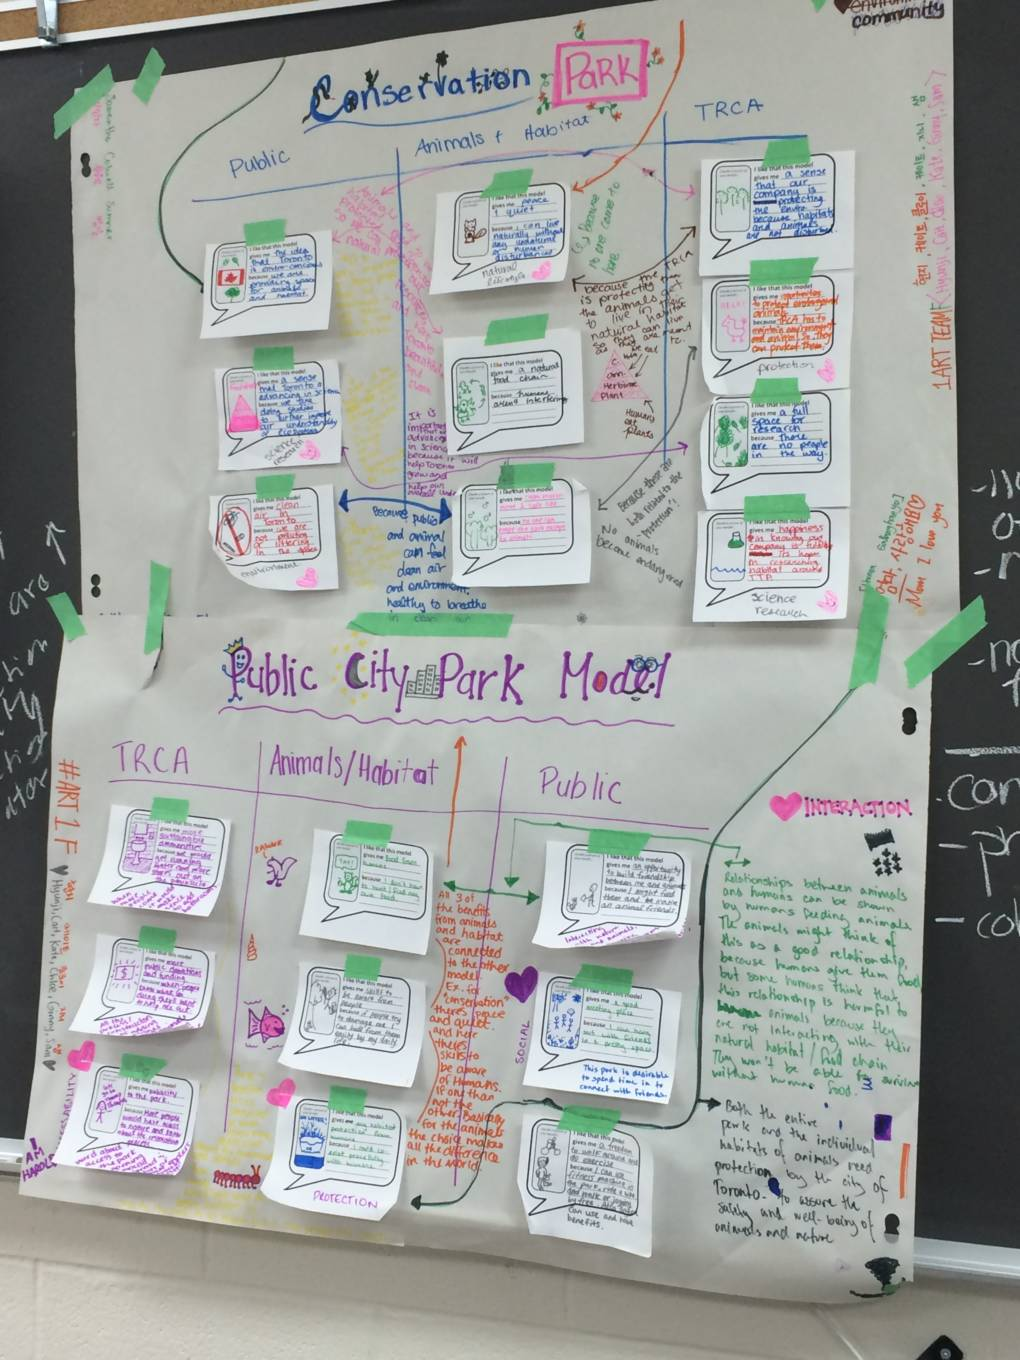 Grade 9 students from Branksome Hall beginning their Integrative Thinking experience with a challenge from the Toronto and Region Conservation Authority. Here are their Pro-Pro charts.